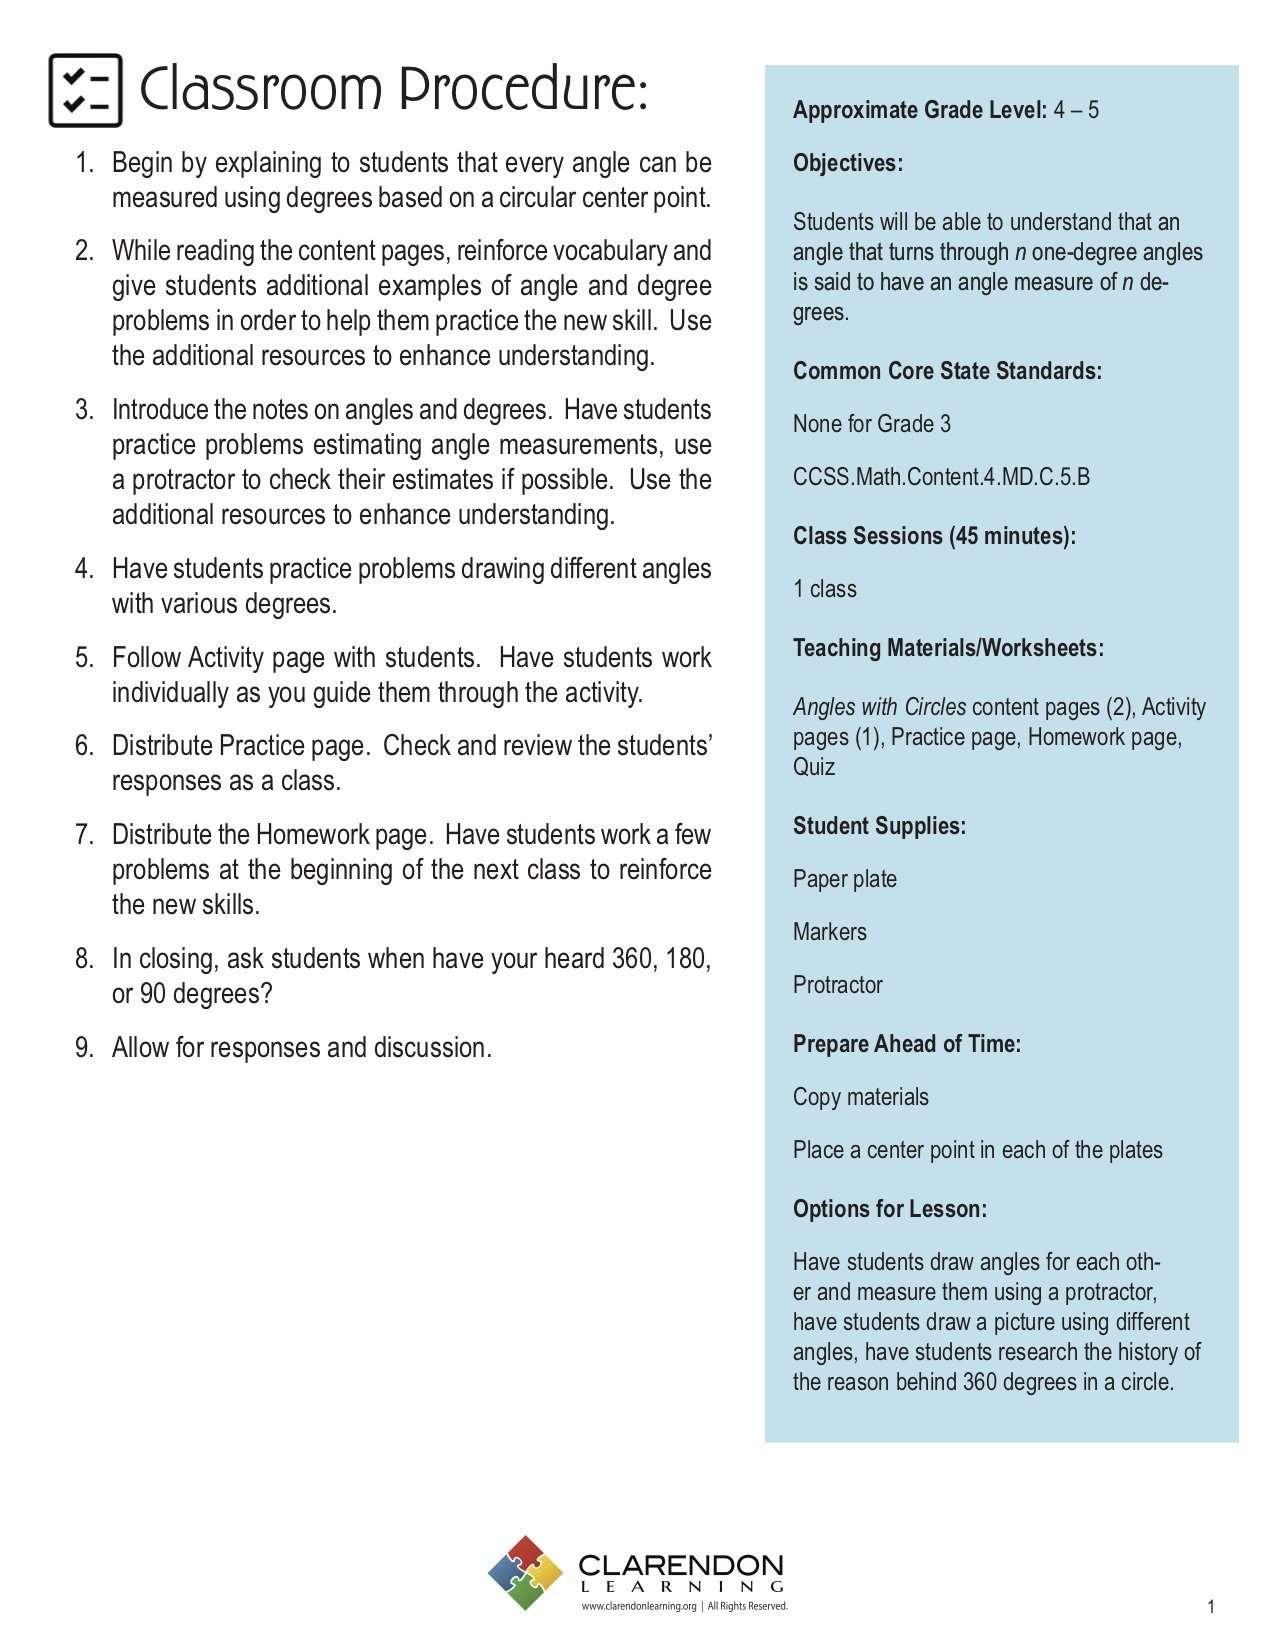 Angles and Degrees Lesson Plan | Clarendon Learning